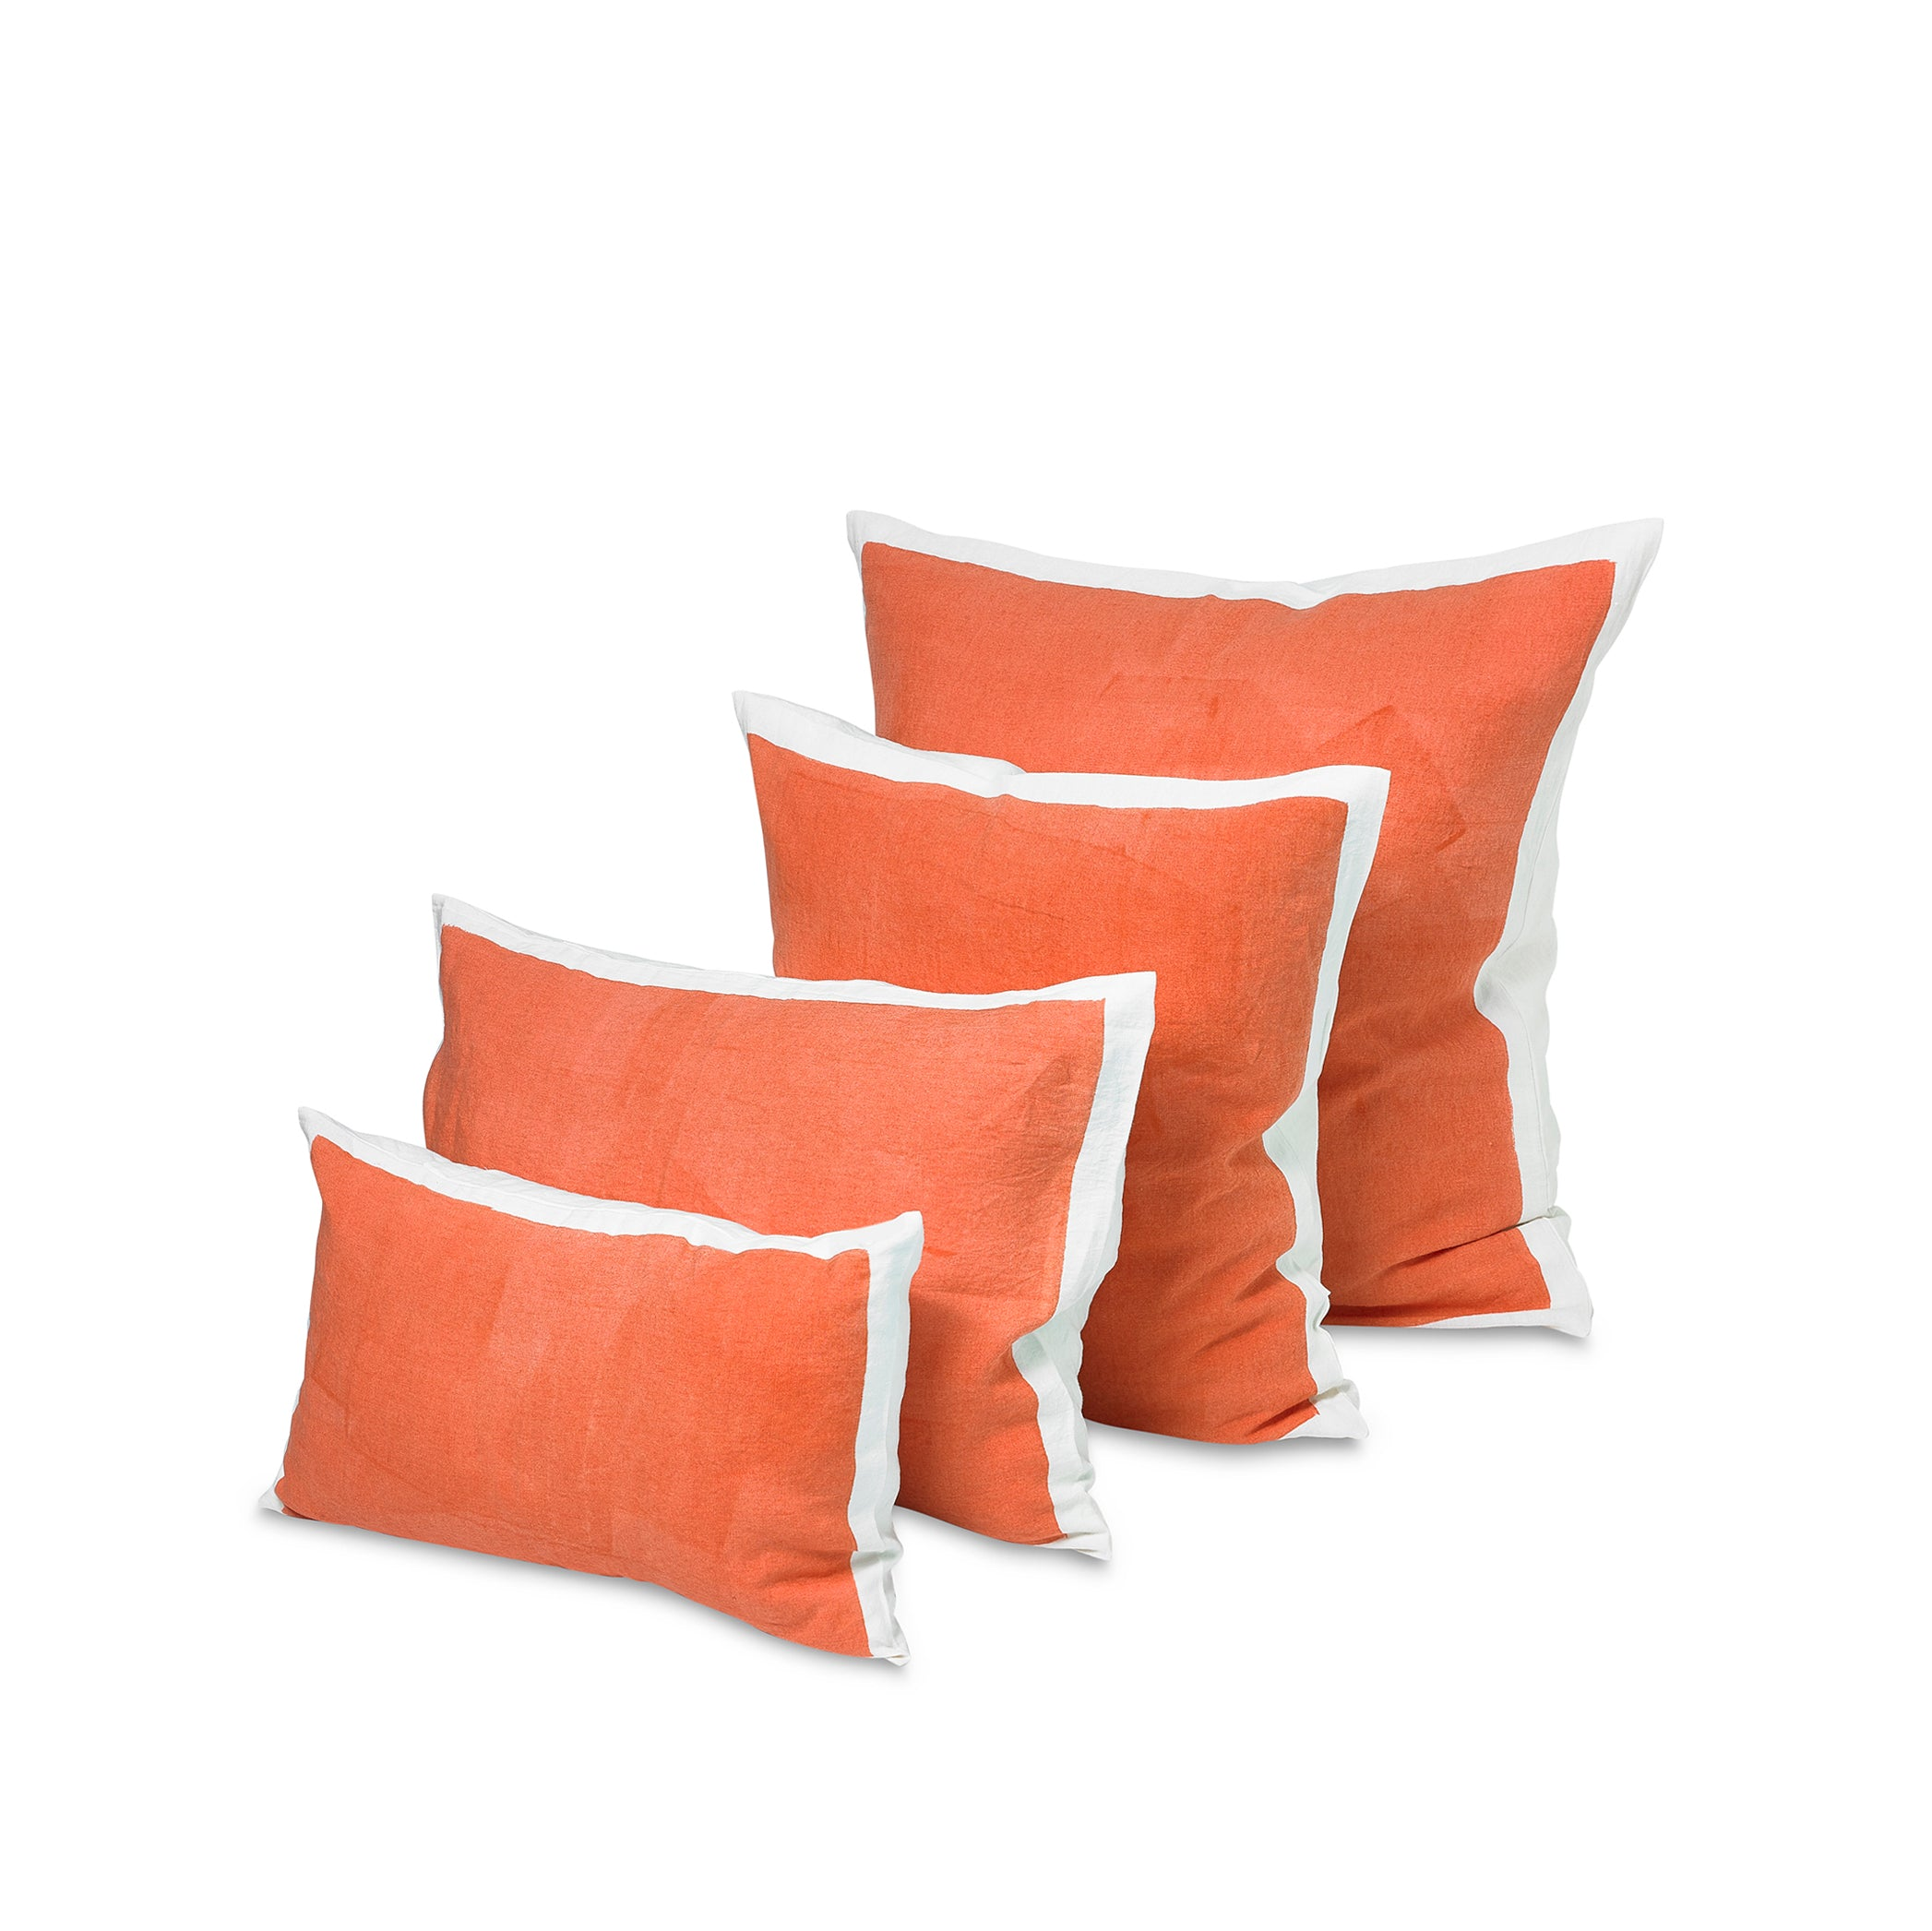 Hand Painted Linen Cushion in Coral, 50cm x 50cm